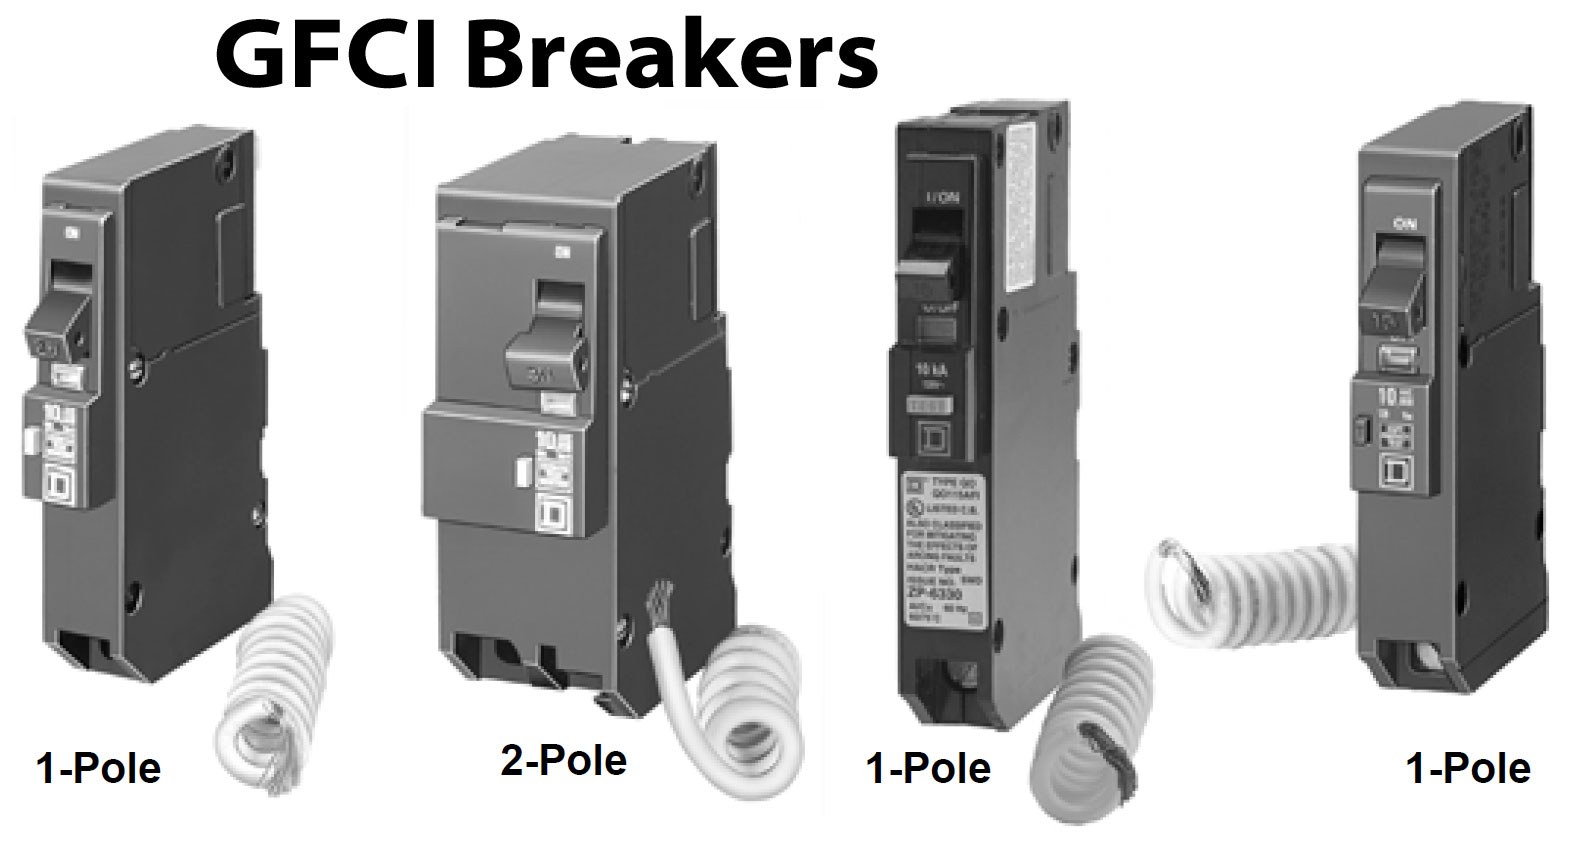 GFCI breakers 1000 how to install and troubleshoot gfci eaton gfci breaker wiring diagram at edmiracle.co